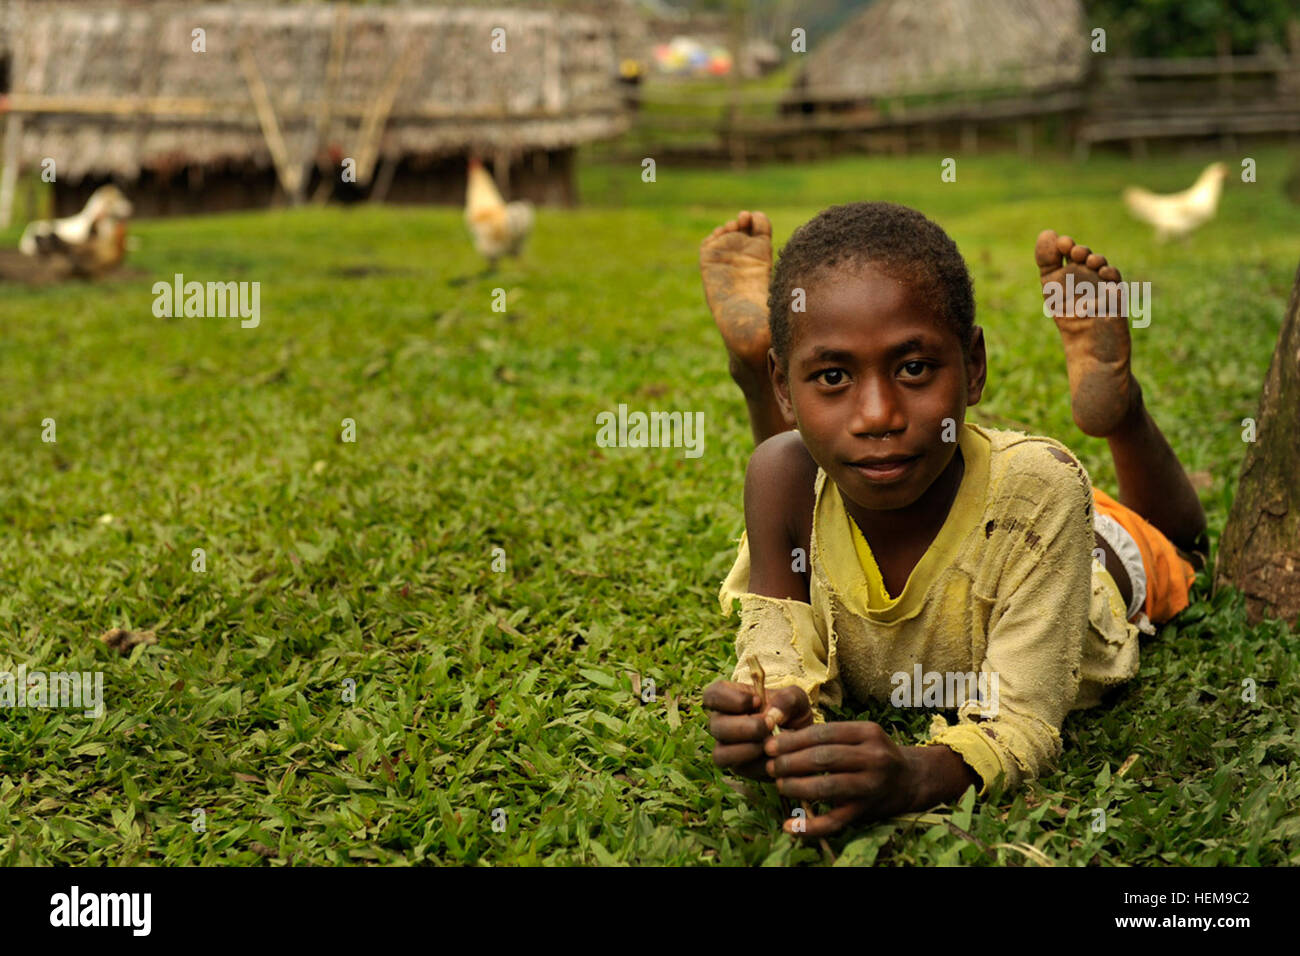 LUGANVILLE, VANUATU -- A young boy from the village of Maljeah watches as service members and civilians from the - Stock Image